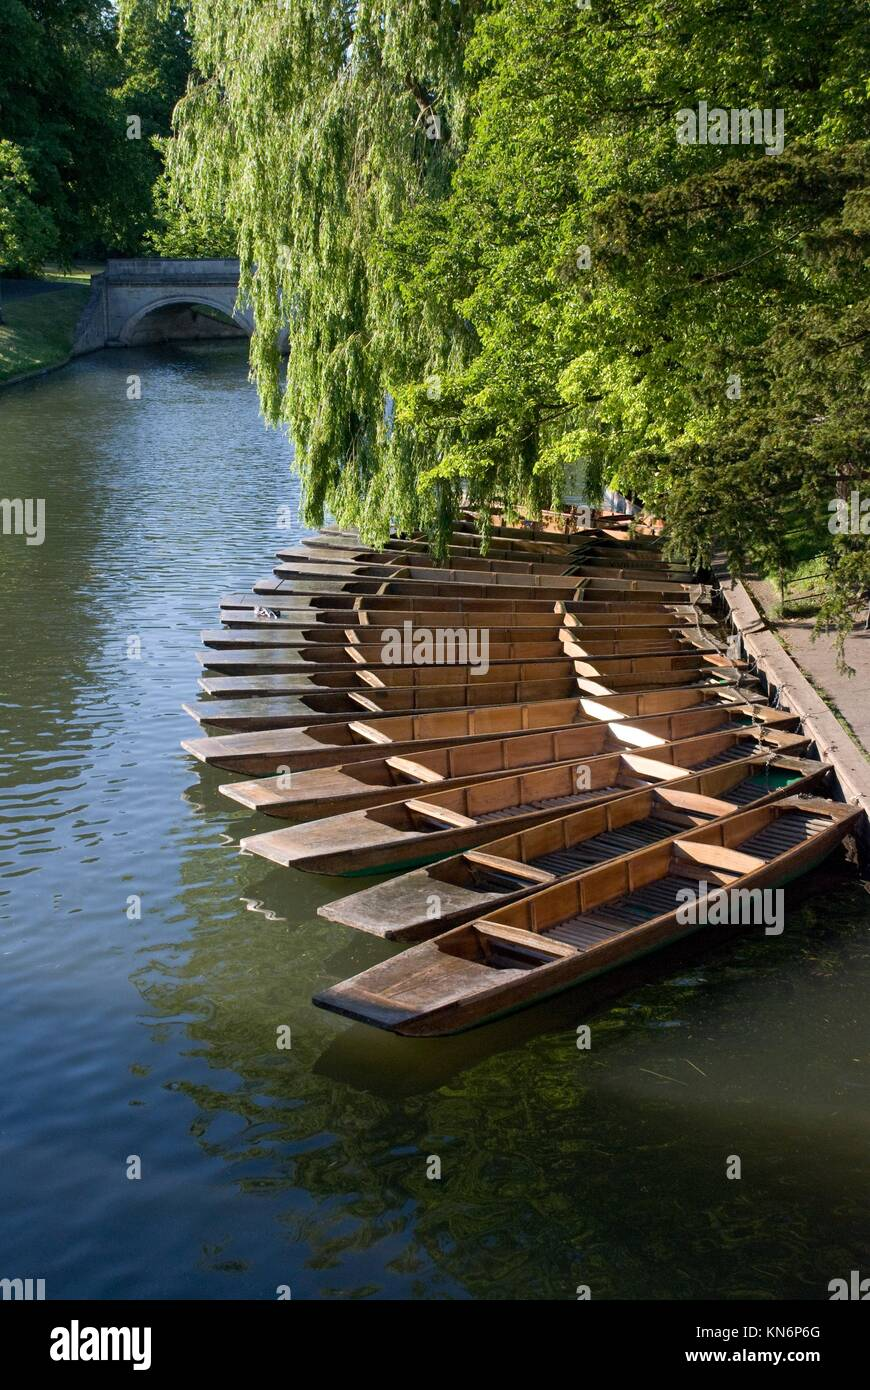 Cambridge boats. University of Cambridge. - Stock Image